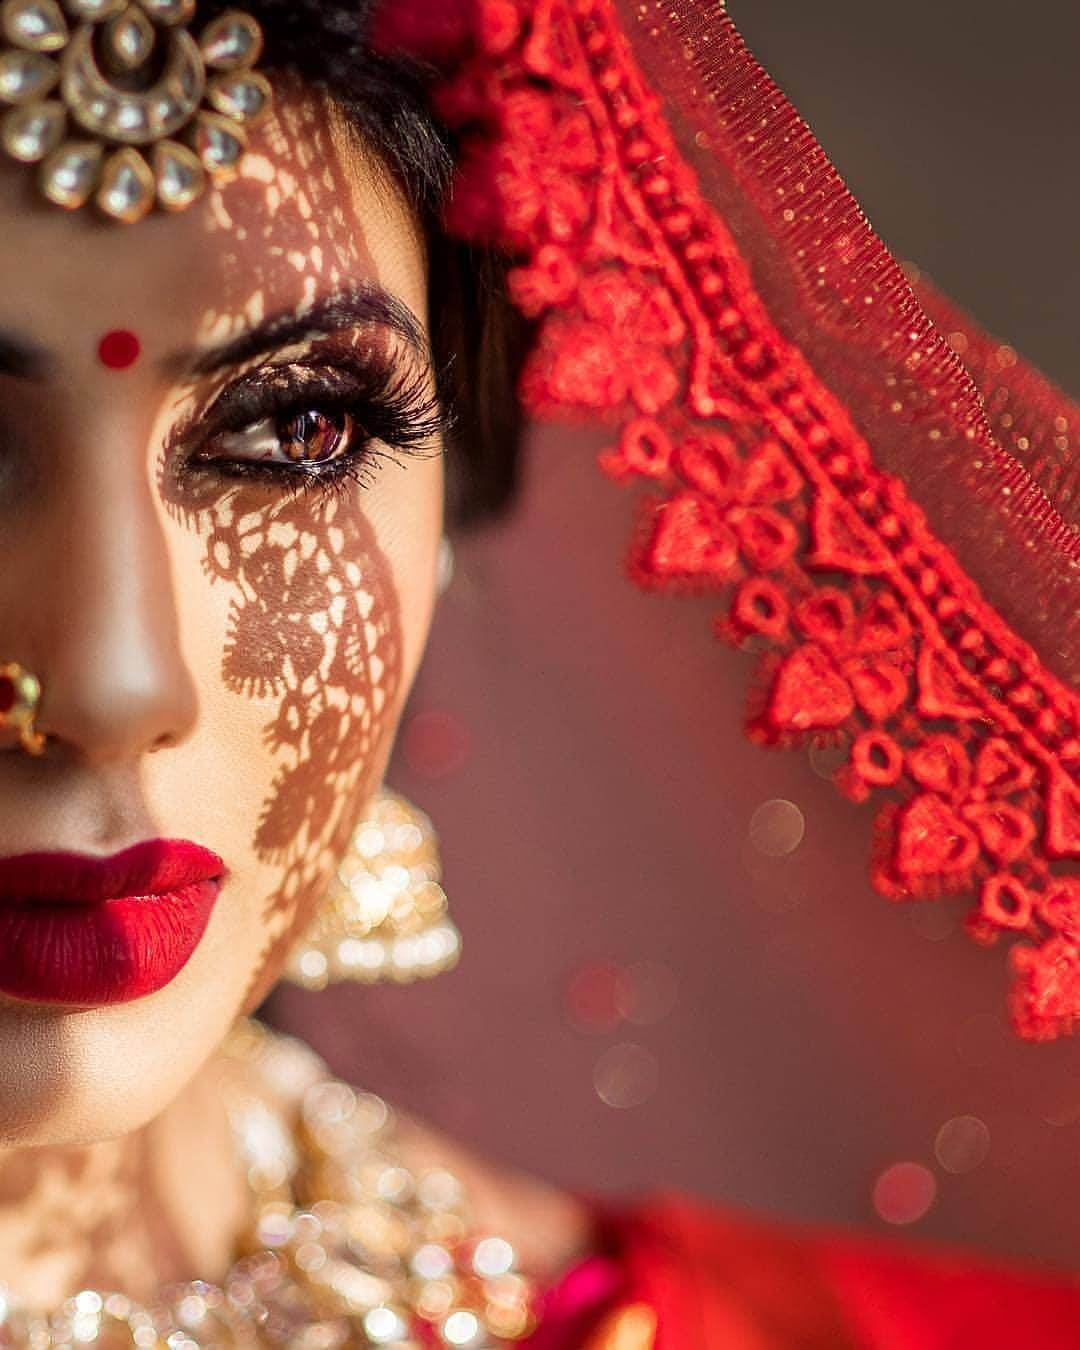 Magnetic Dark Lip Makeup for Brides for Their Wedding: Bridesmaids Could Go Too!